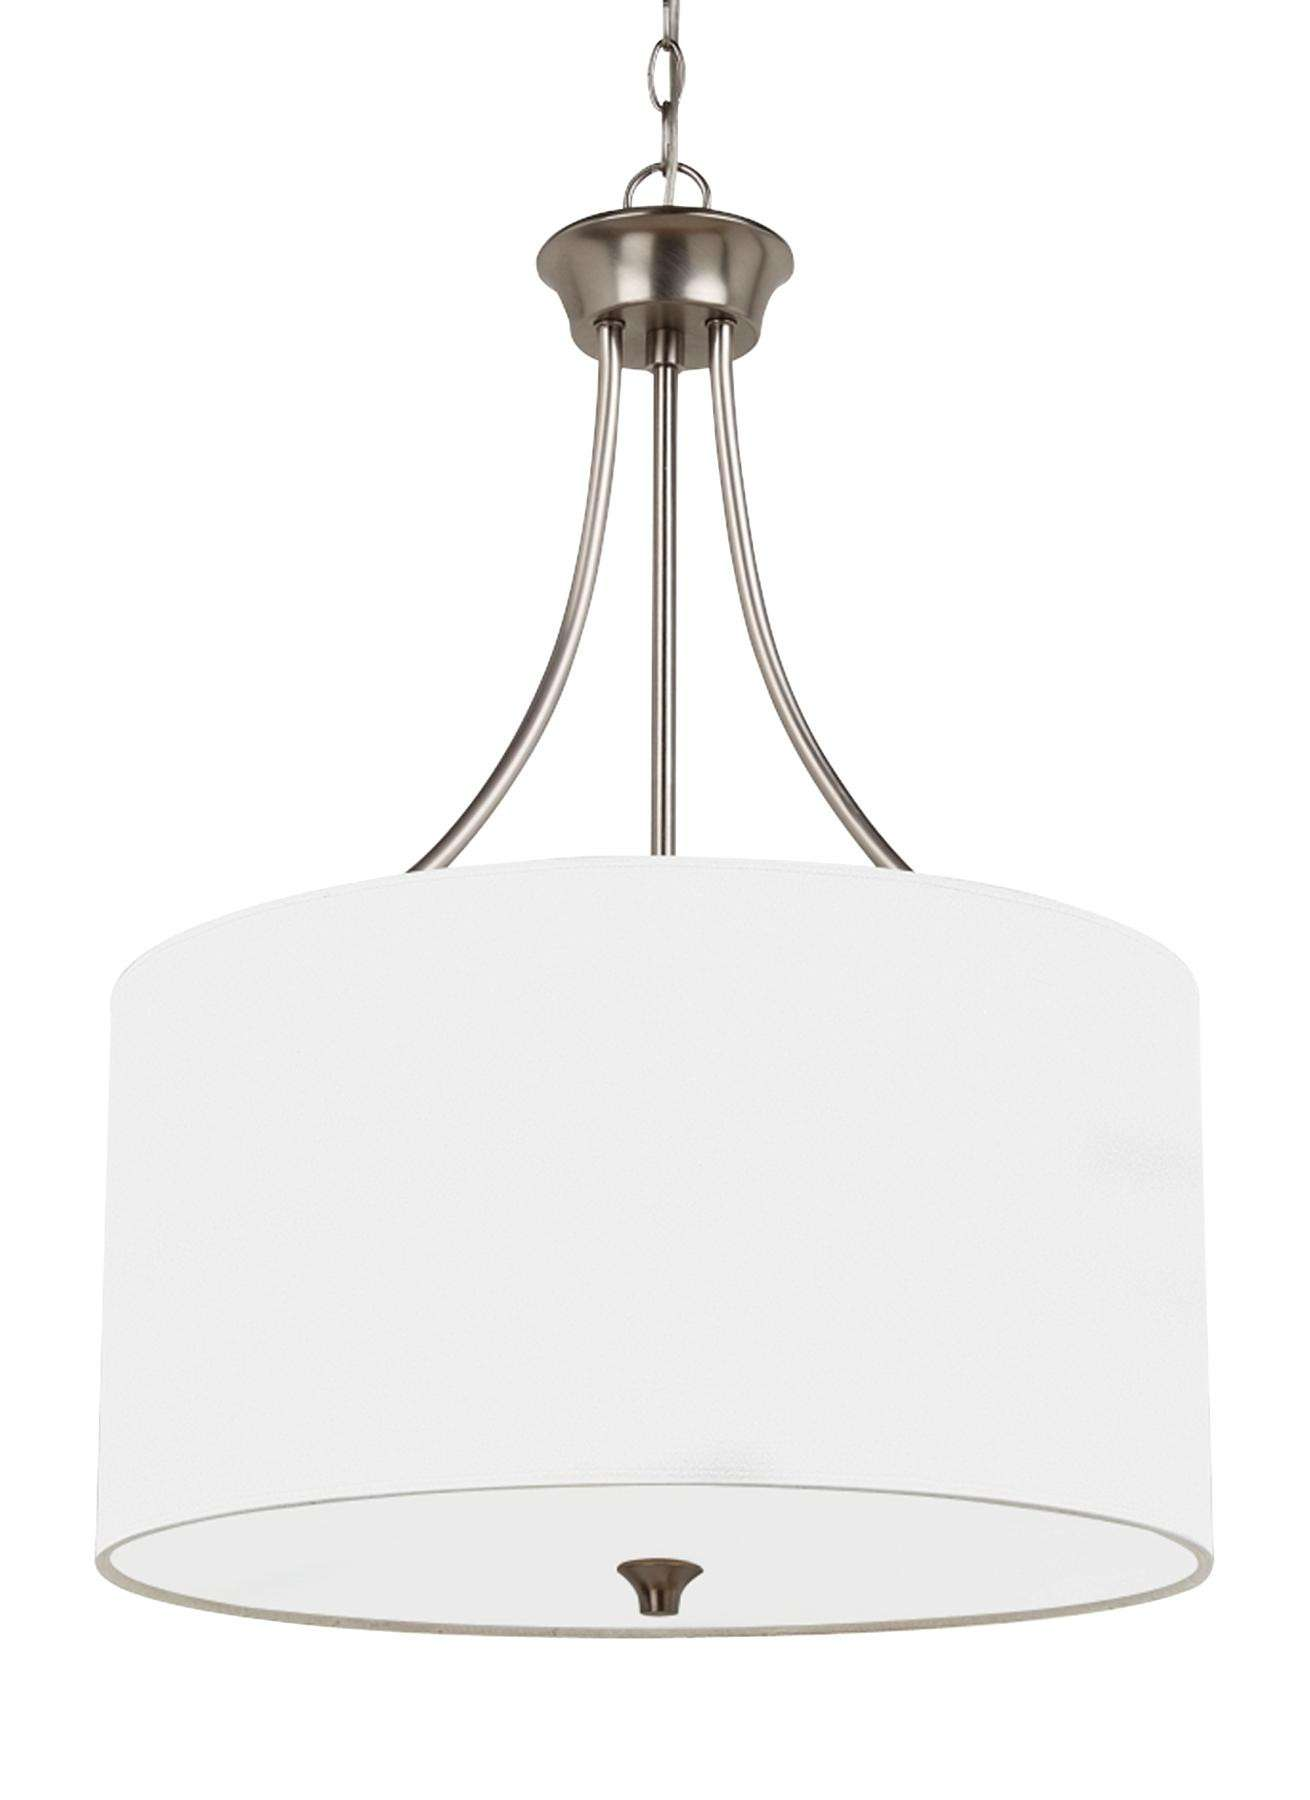 Seagull Lighting 65953-962 Three Light Pendant in Brushed Nickel finish